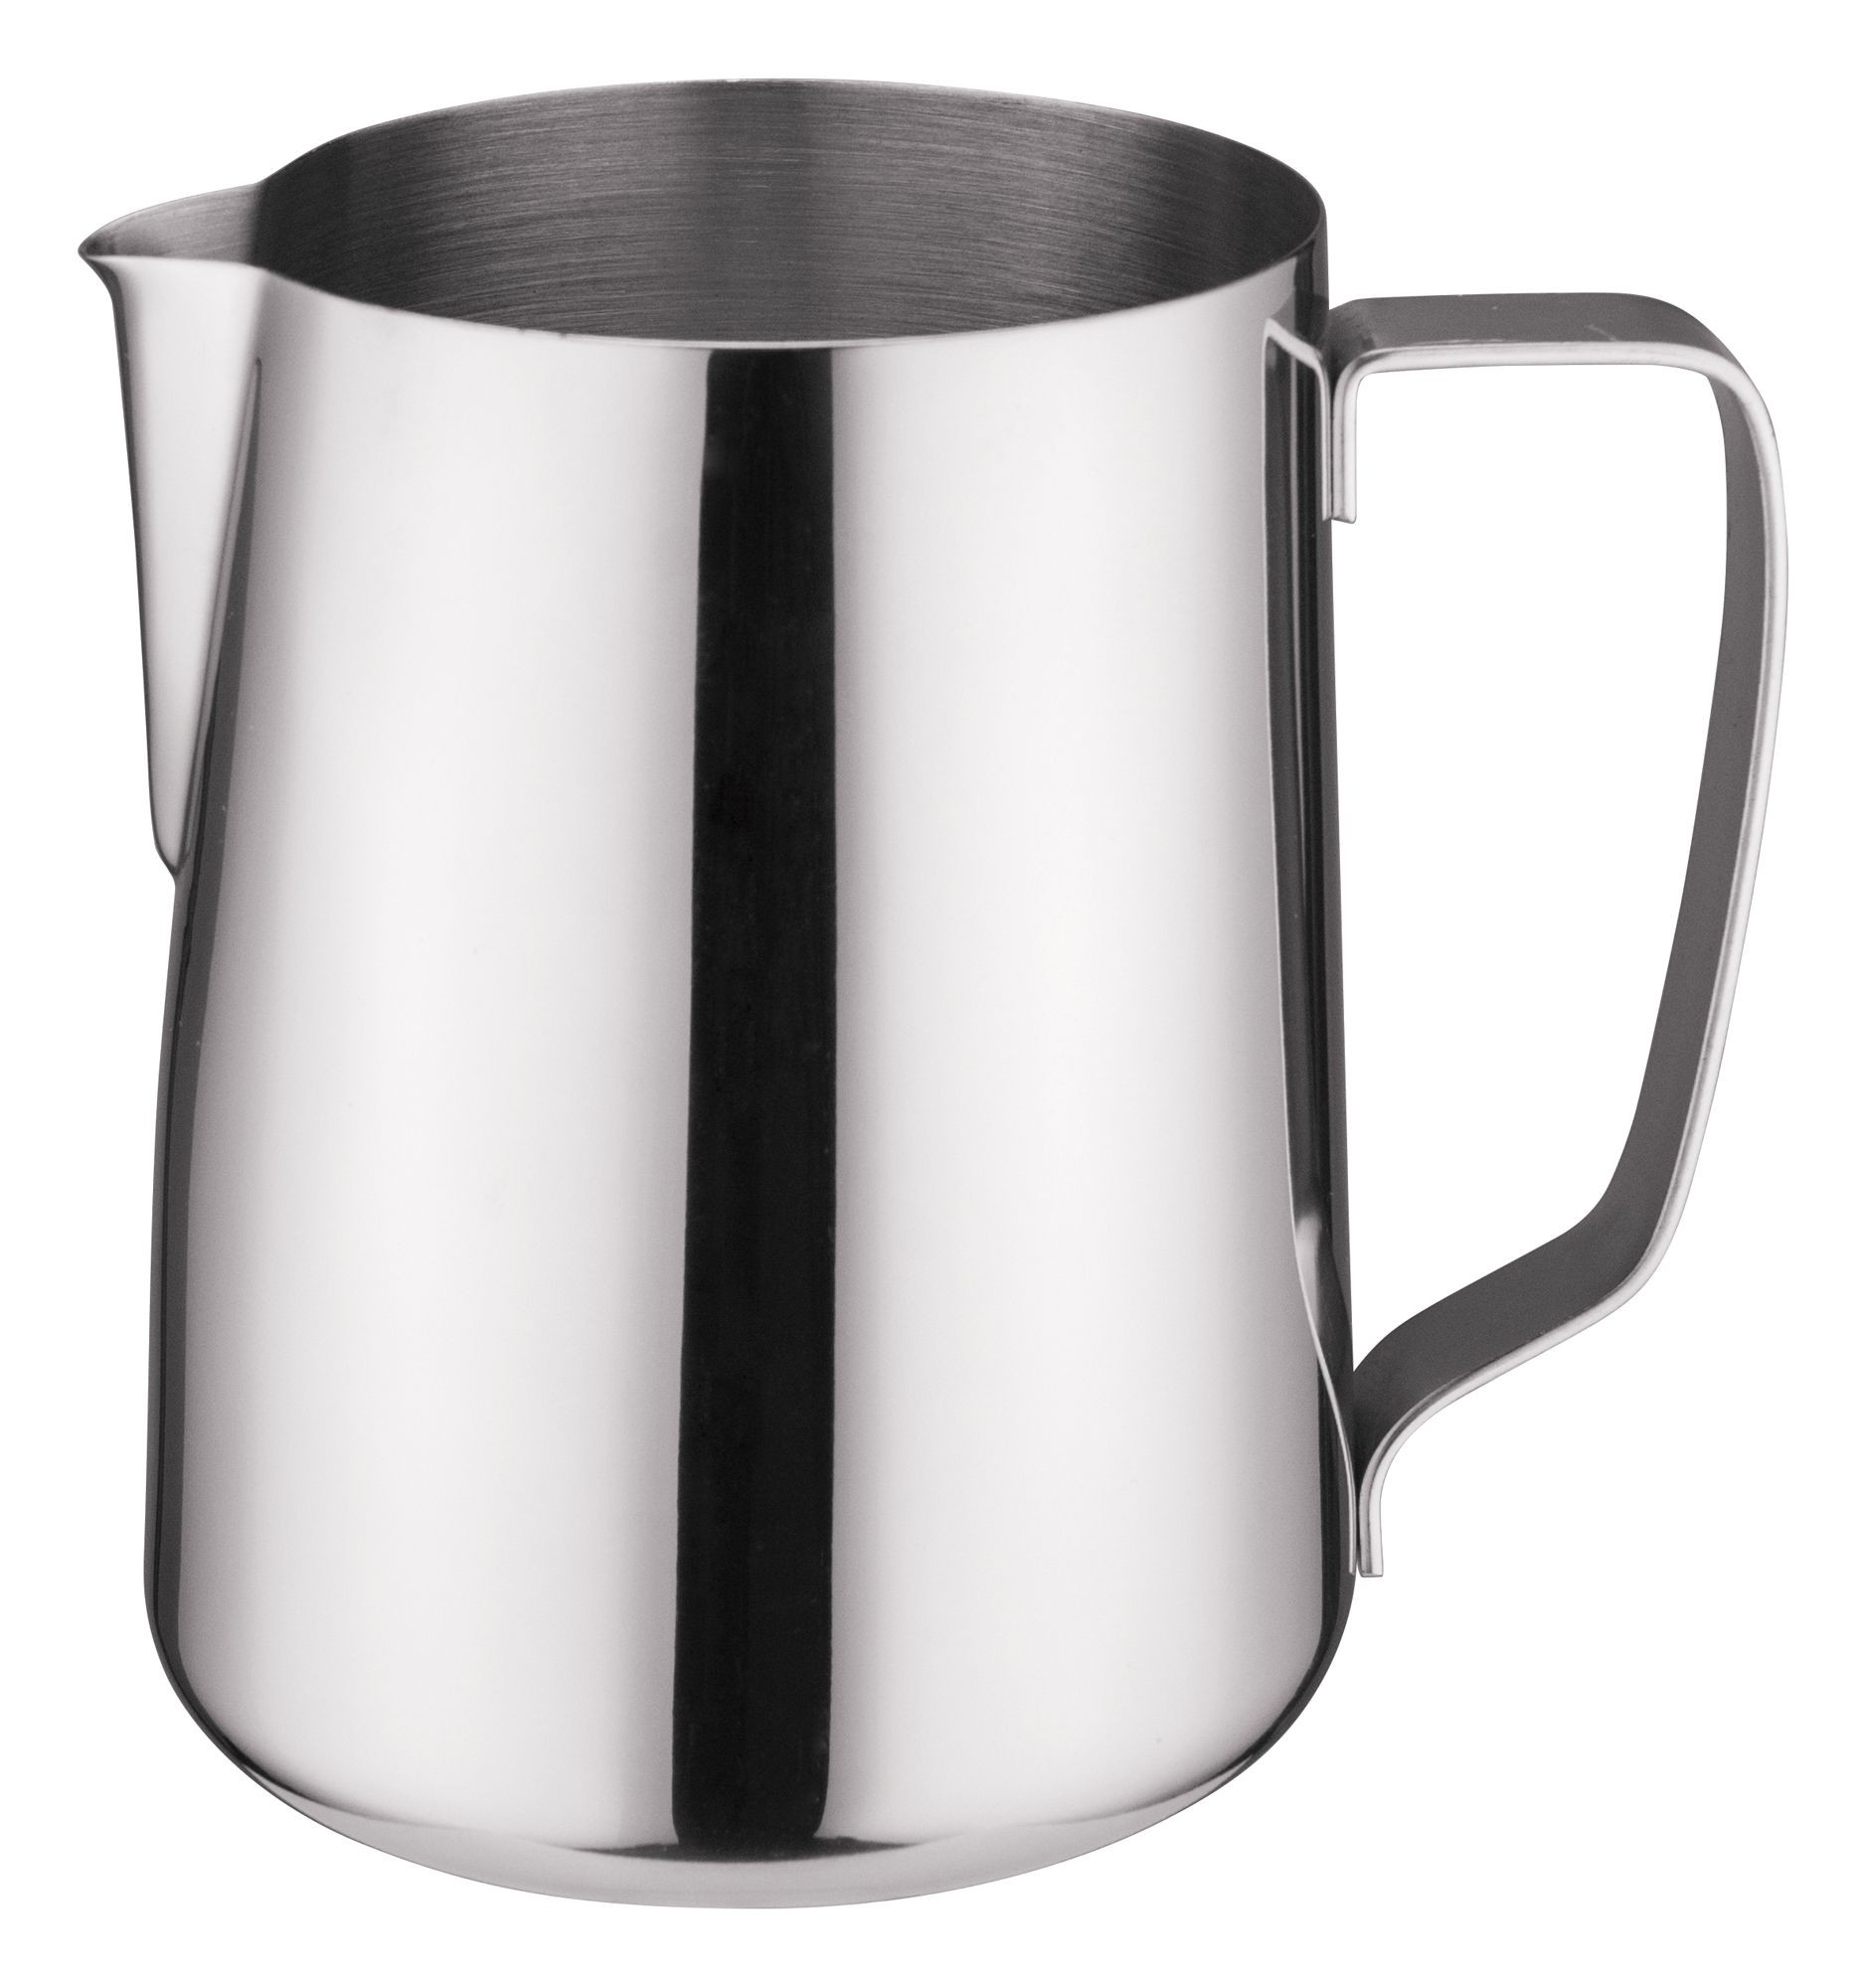 Winco WP-66 Stainless Steel 66 oz. Frothing Pitcher